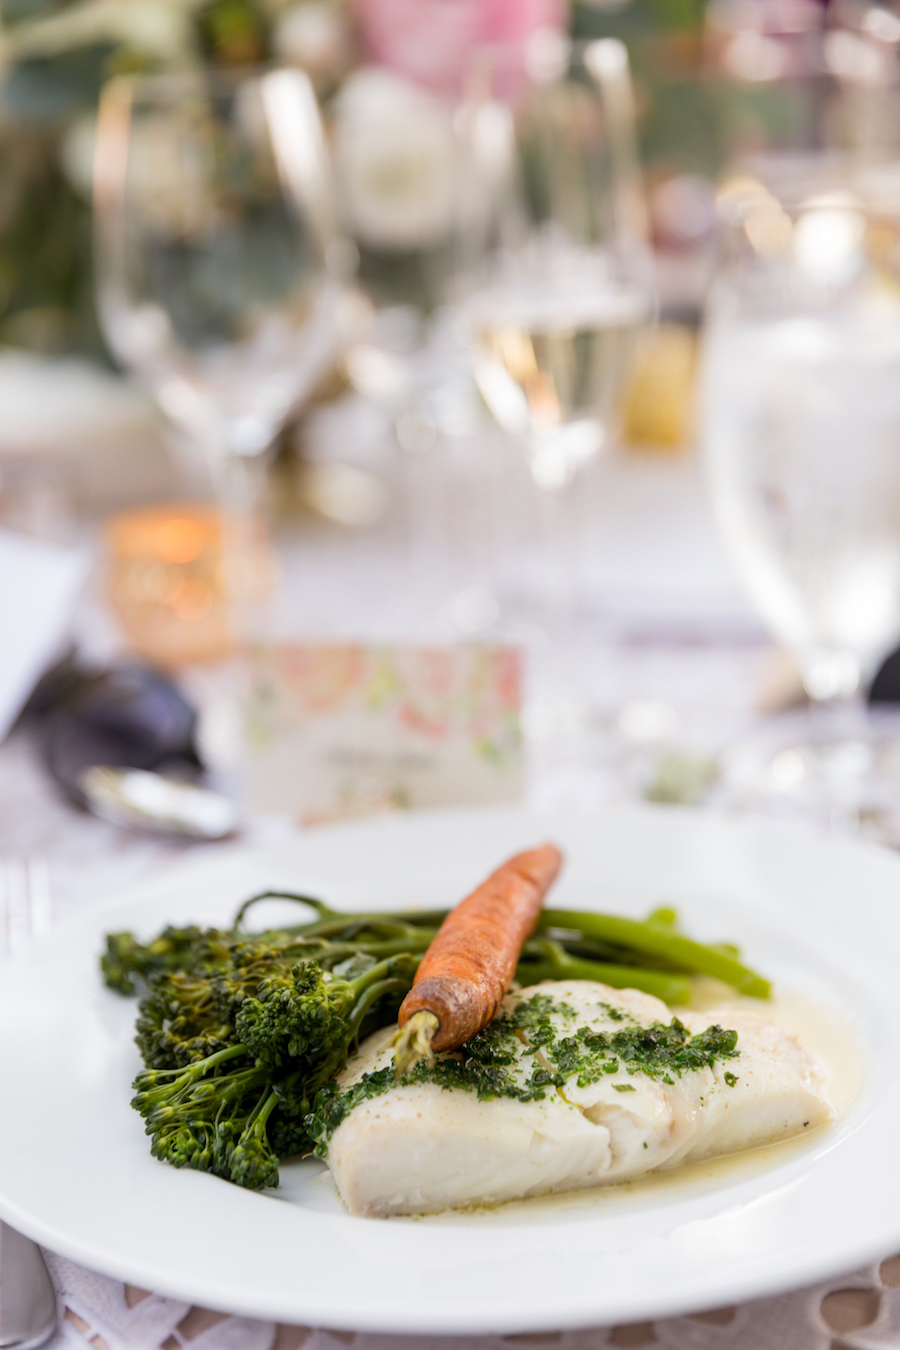 Chic and Organic Outdoor Wedding at Harvest Inn127.jpg